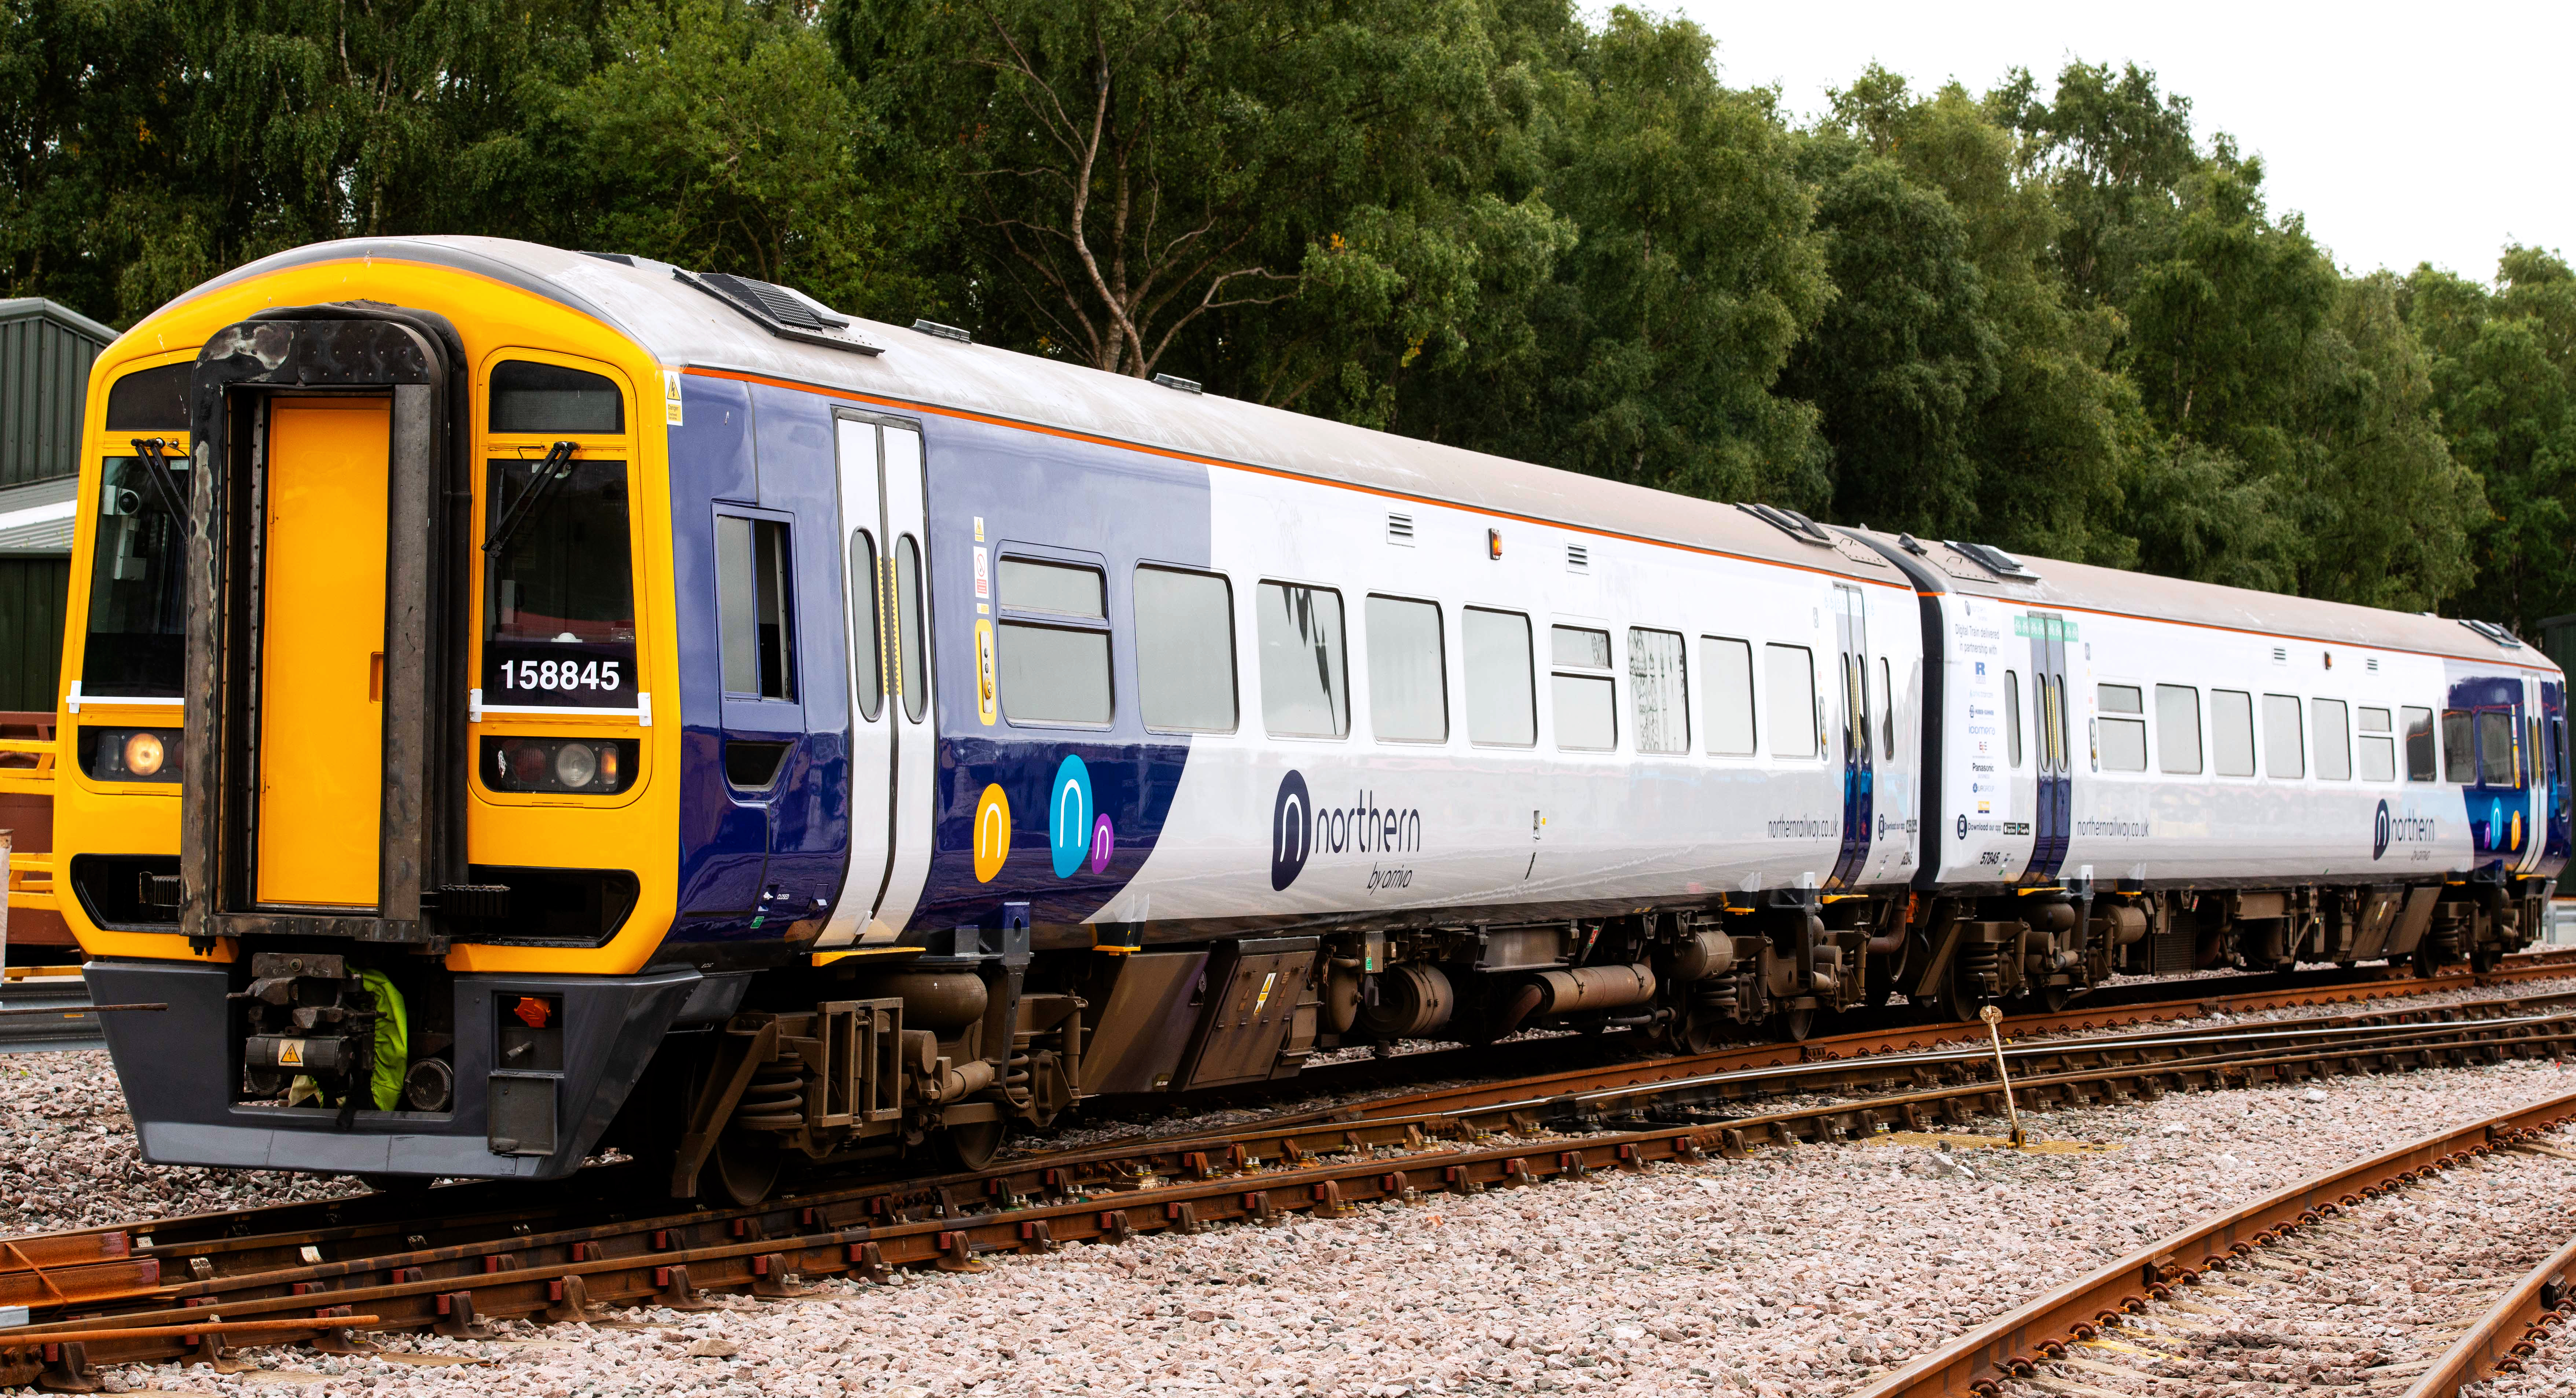 Northern partner with Icomera for launch of Best-in-class Digital Train